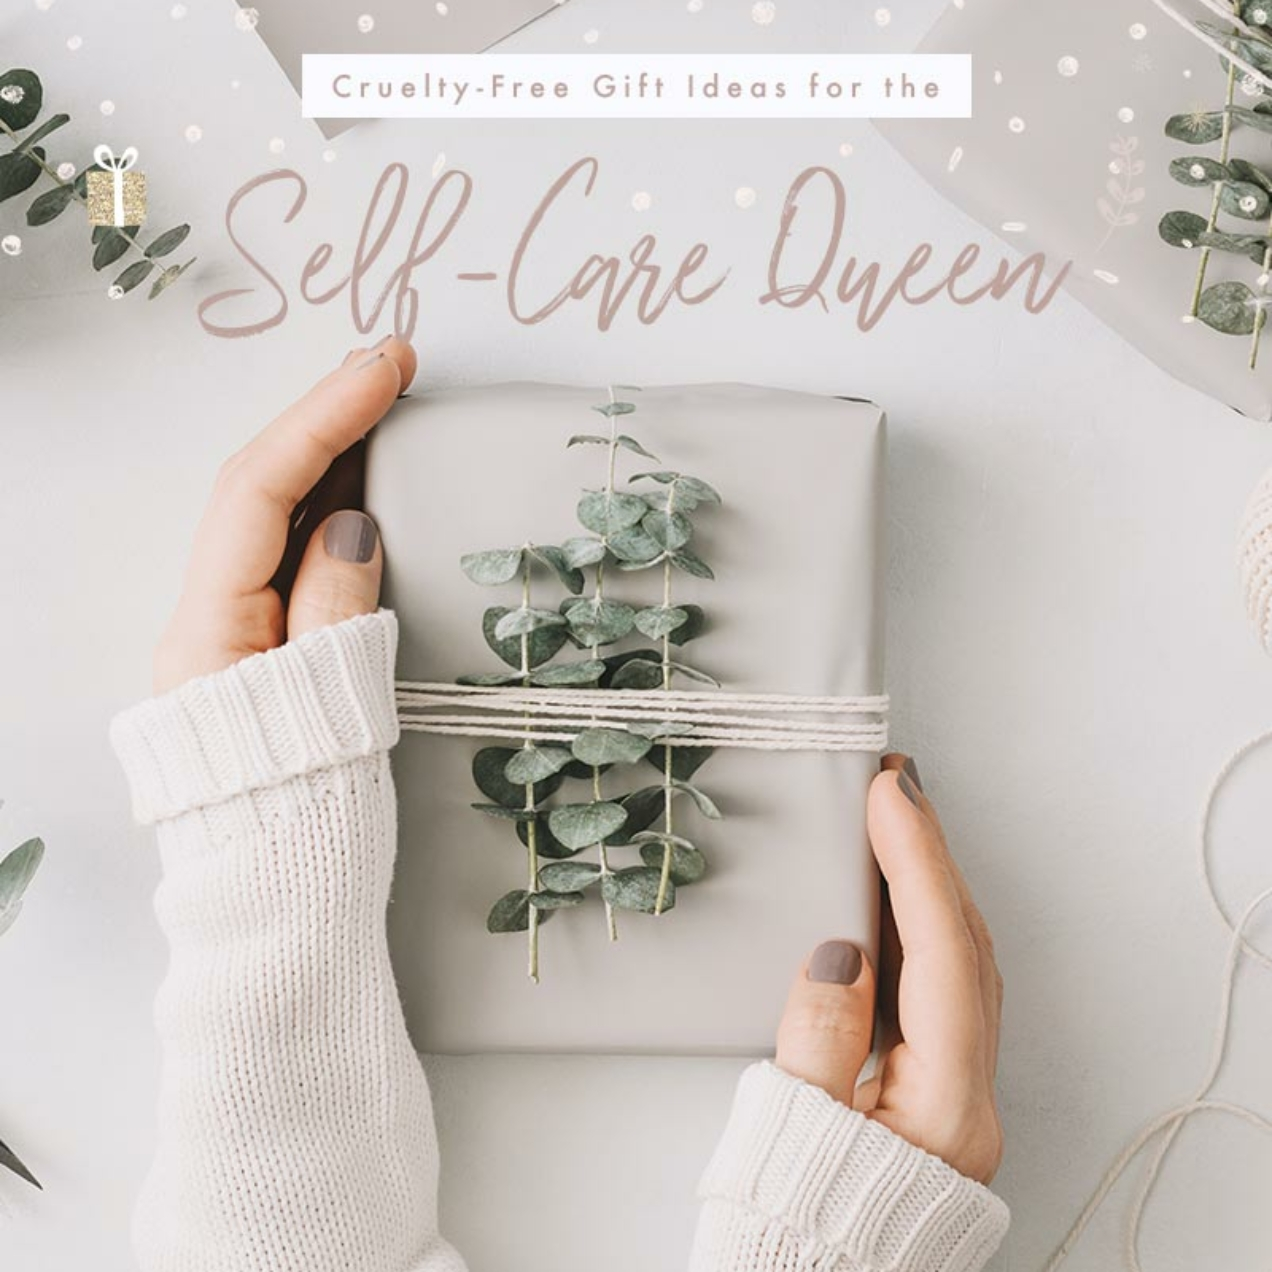 Cruelty-Free Gift Ideas for the Self-Care Queen